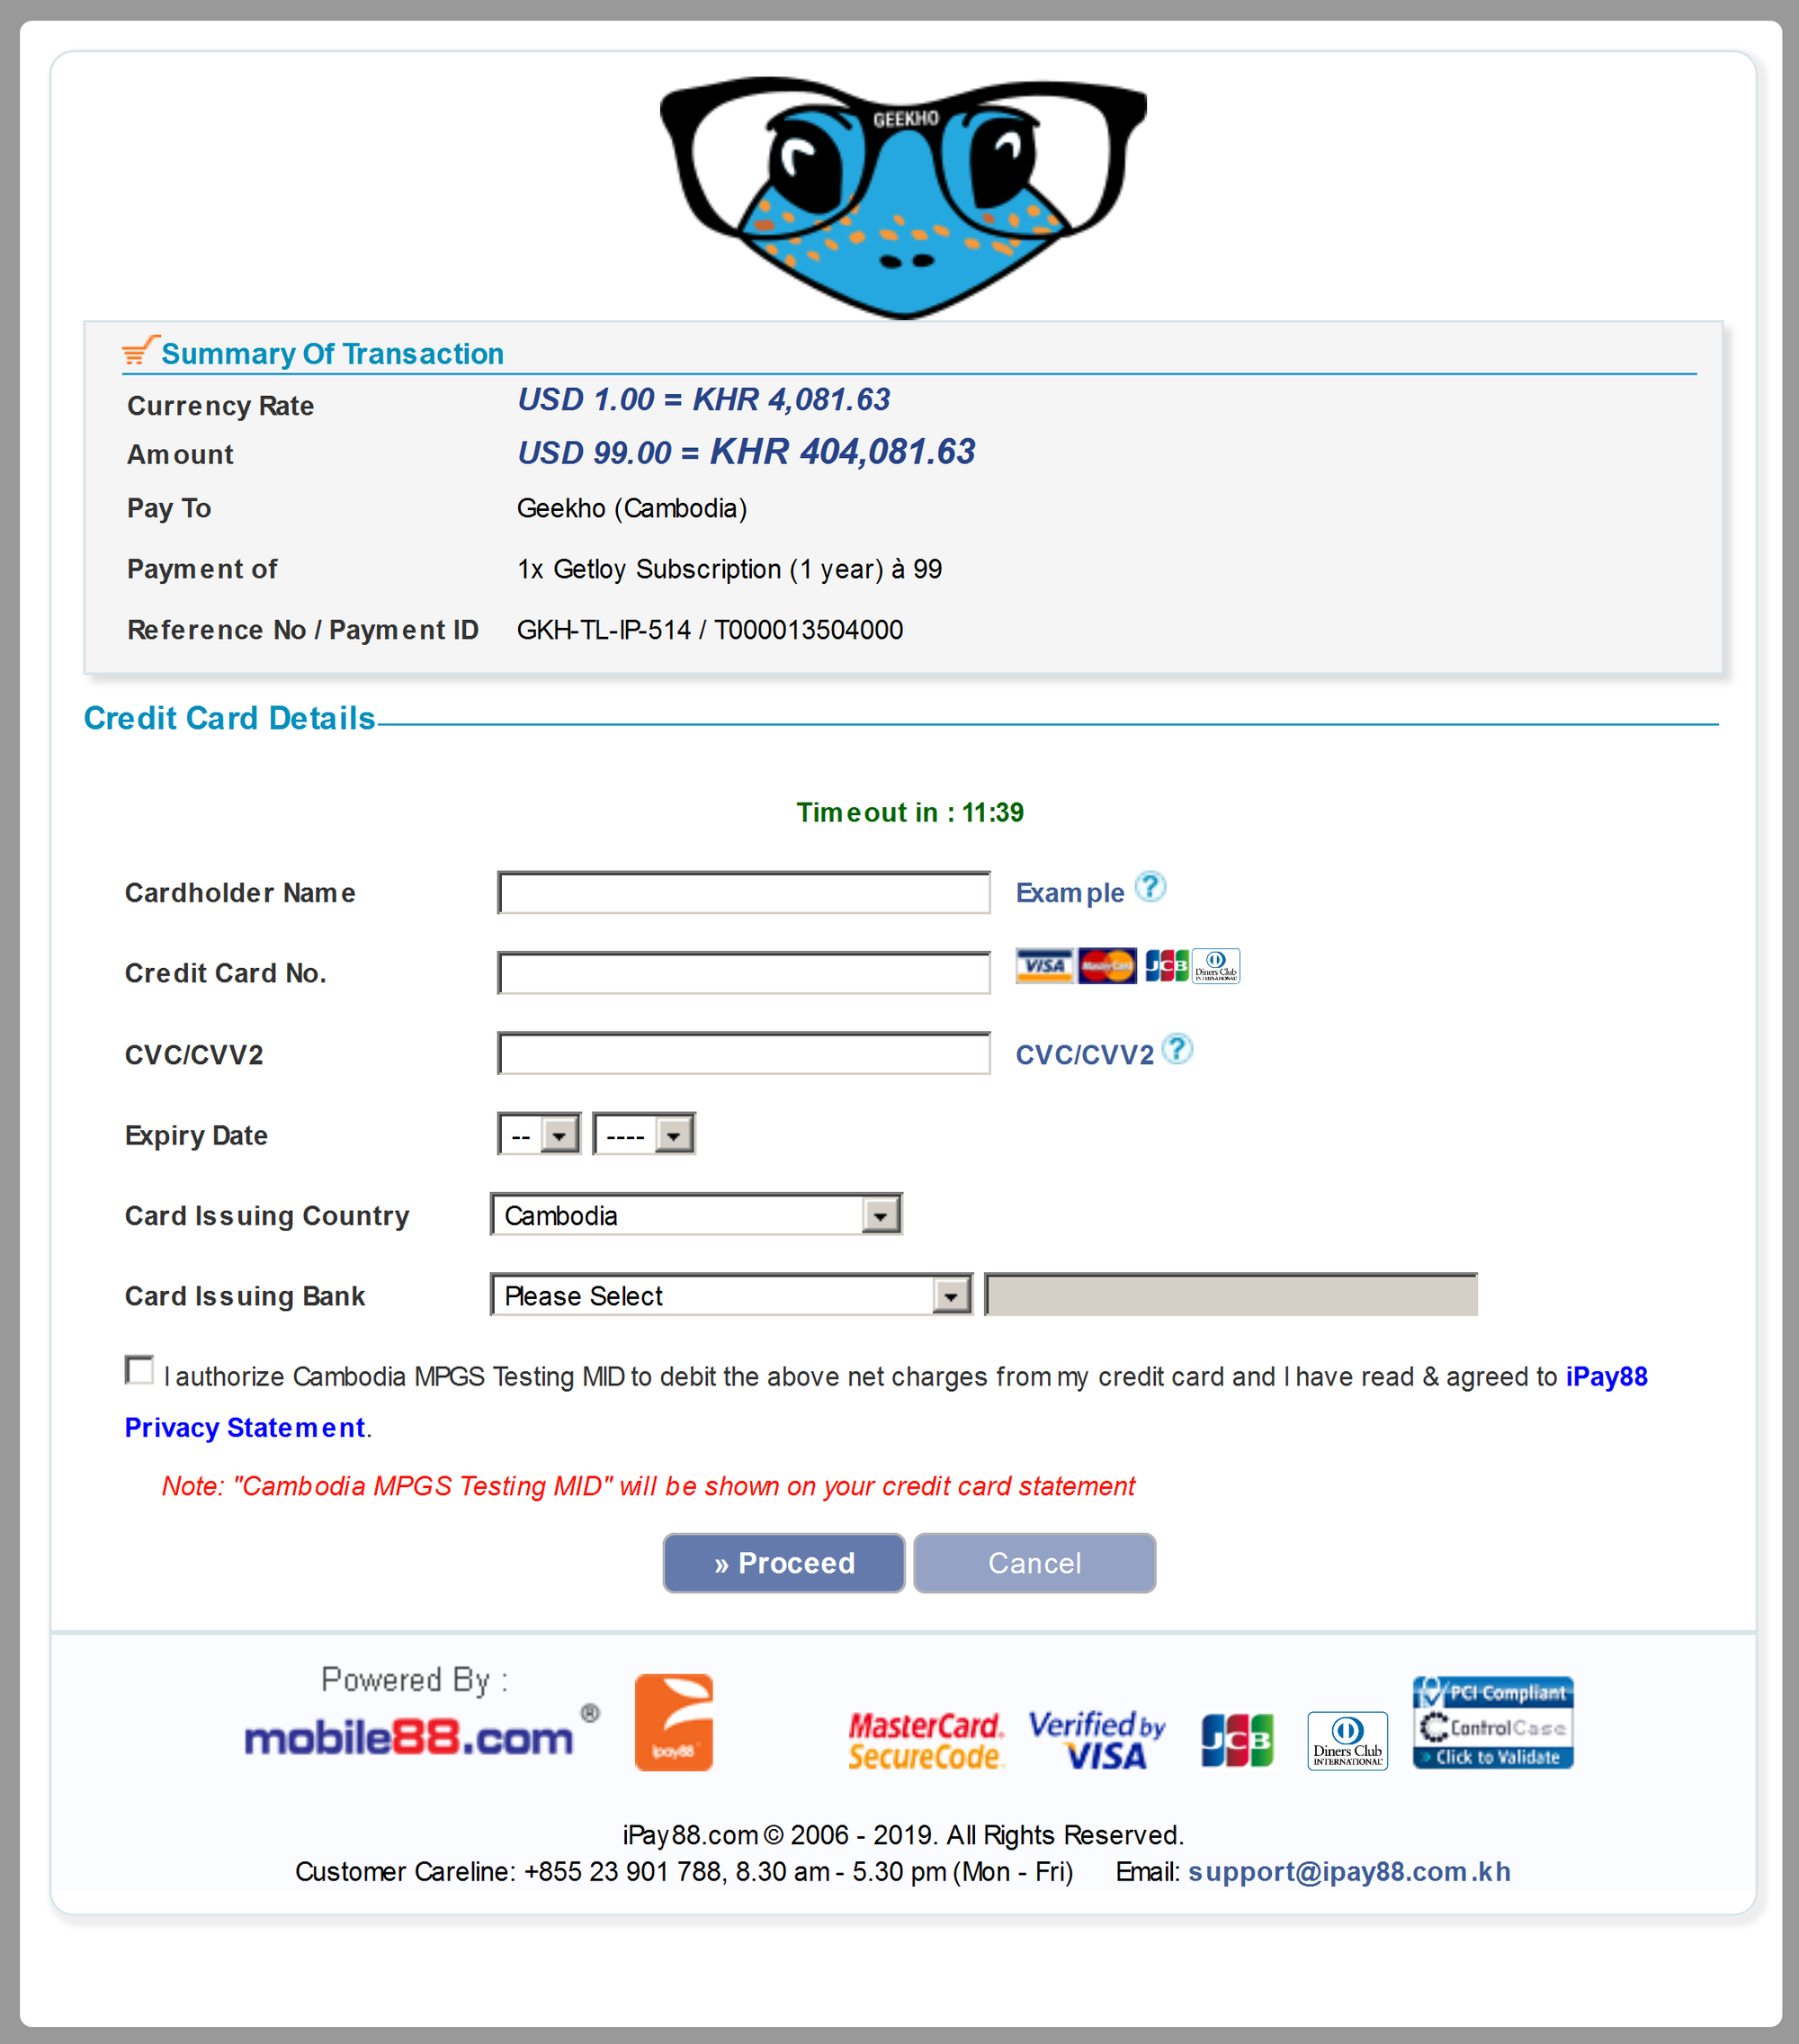 iPay88's payment interface for credit/debit card payments